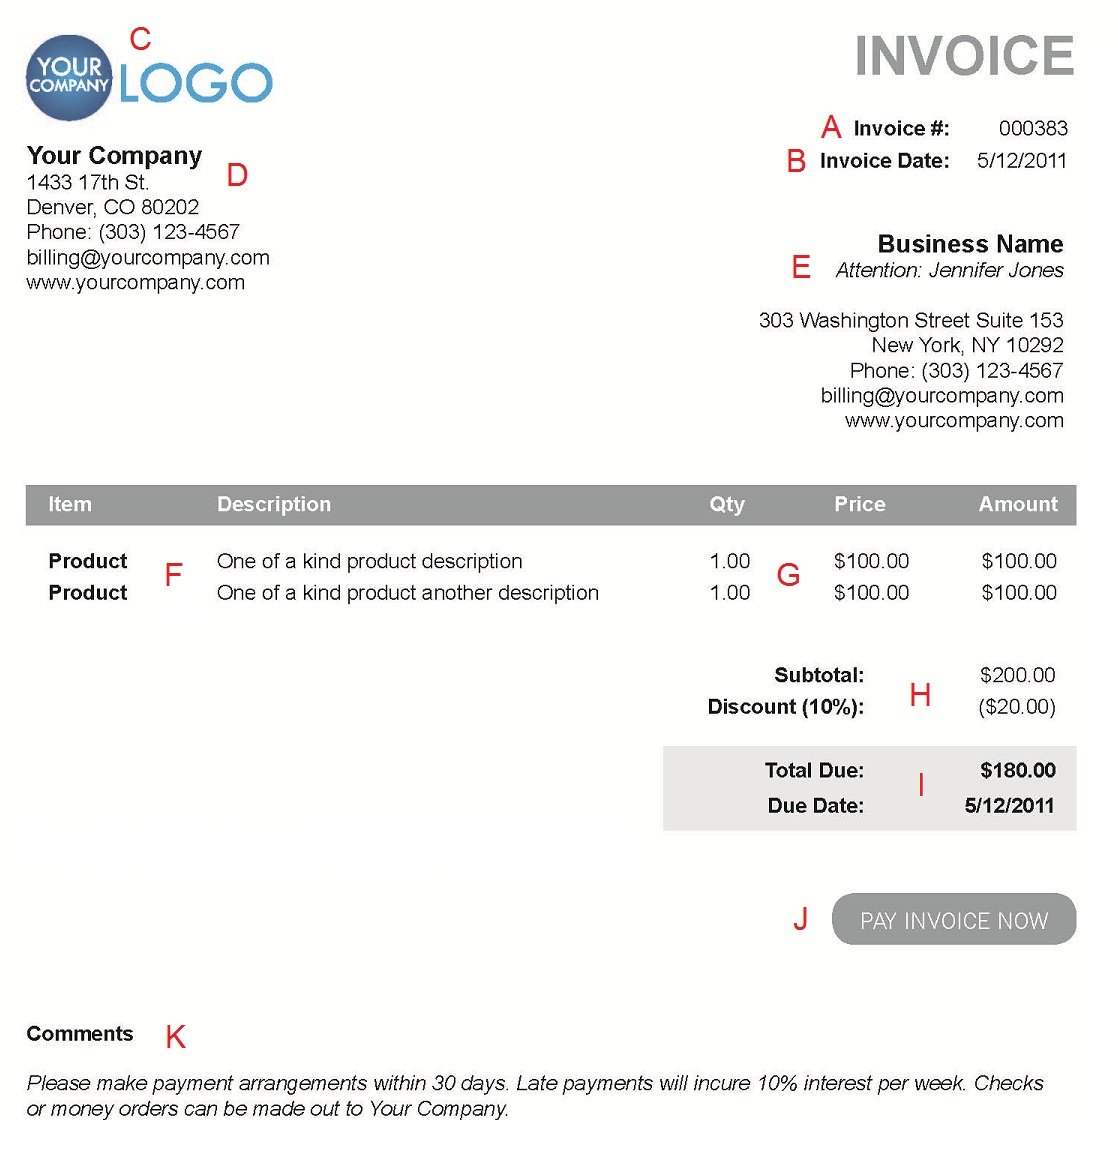 Proatmealus  Marvellous The  Different Sections Of An Electronic Payment Invoice With Magnificent A  With Awesome Receipt Tracking Apps Also Email Receipt Gmail In Addition Receipt Paper Joint And Printable Receipts Free As Well As New York State Filing Receipt Additionally Purchase Order Receipt From Paysimplecom With Proatmealus  Magnificent The  Different Sections Of An Electronic Payment Invoice With Awesome A  And Marvellous Receipt Tracking Apps Also Email Receipt Gmail In Addition Receipt Paper Joint From Paysimplecom